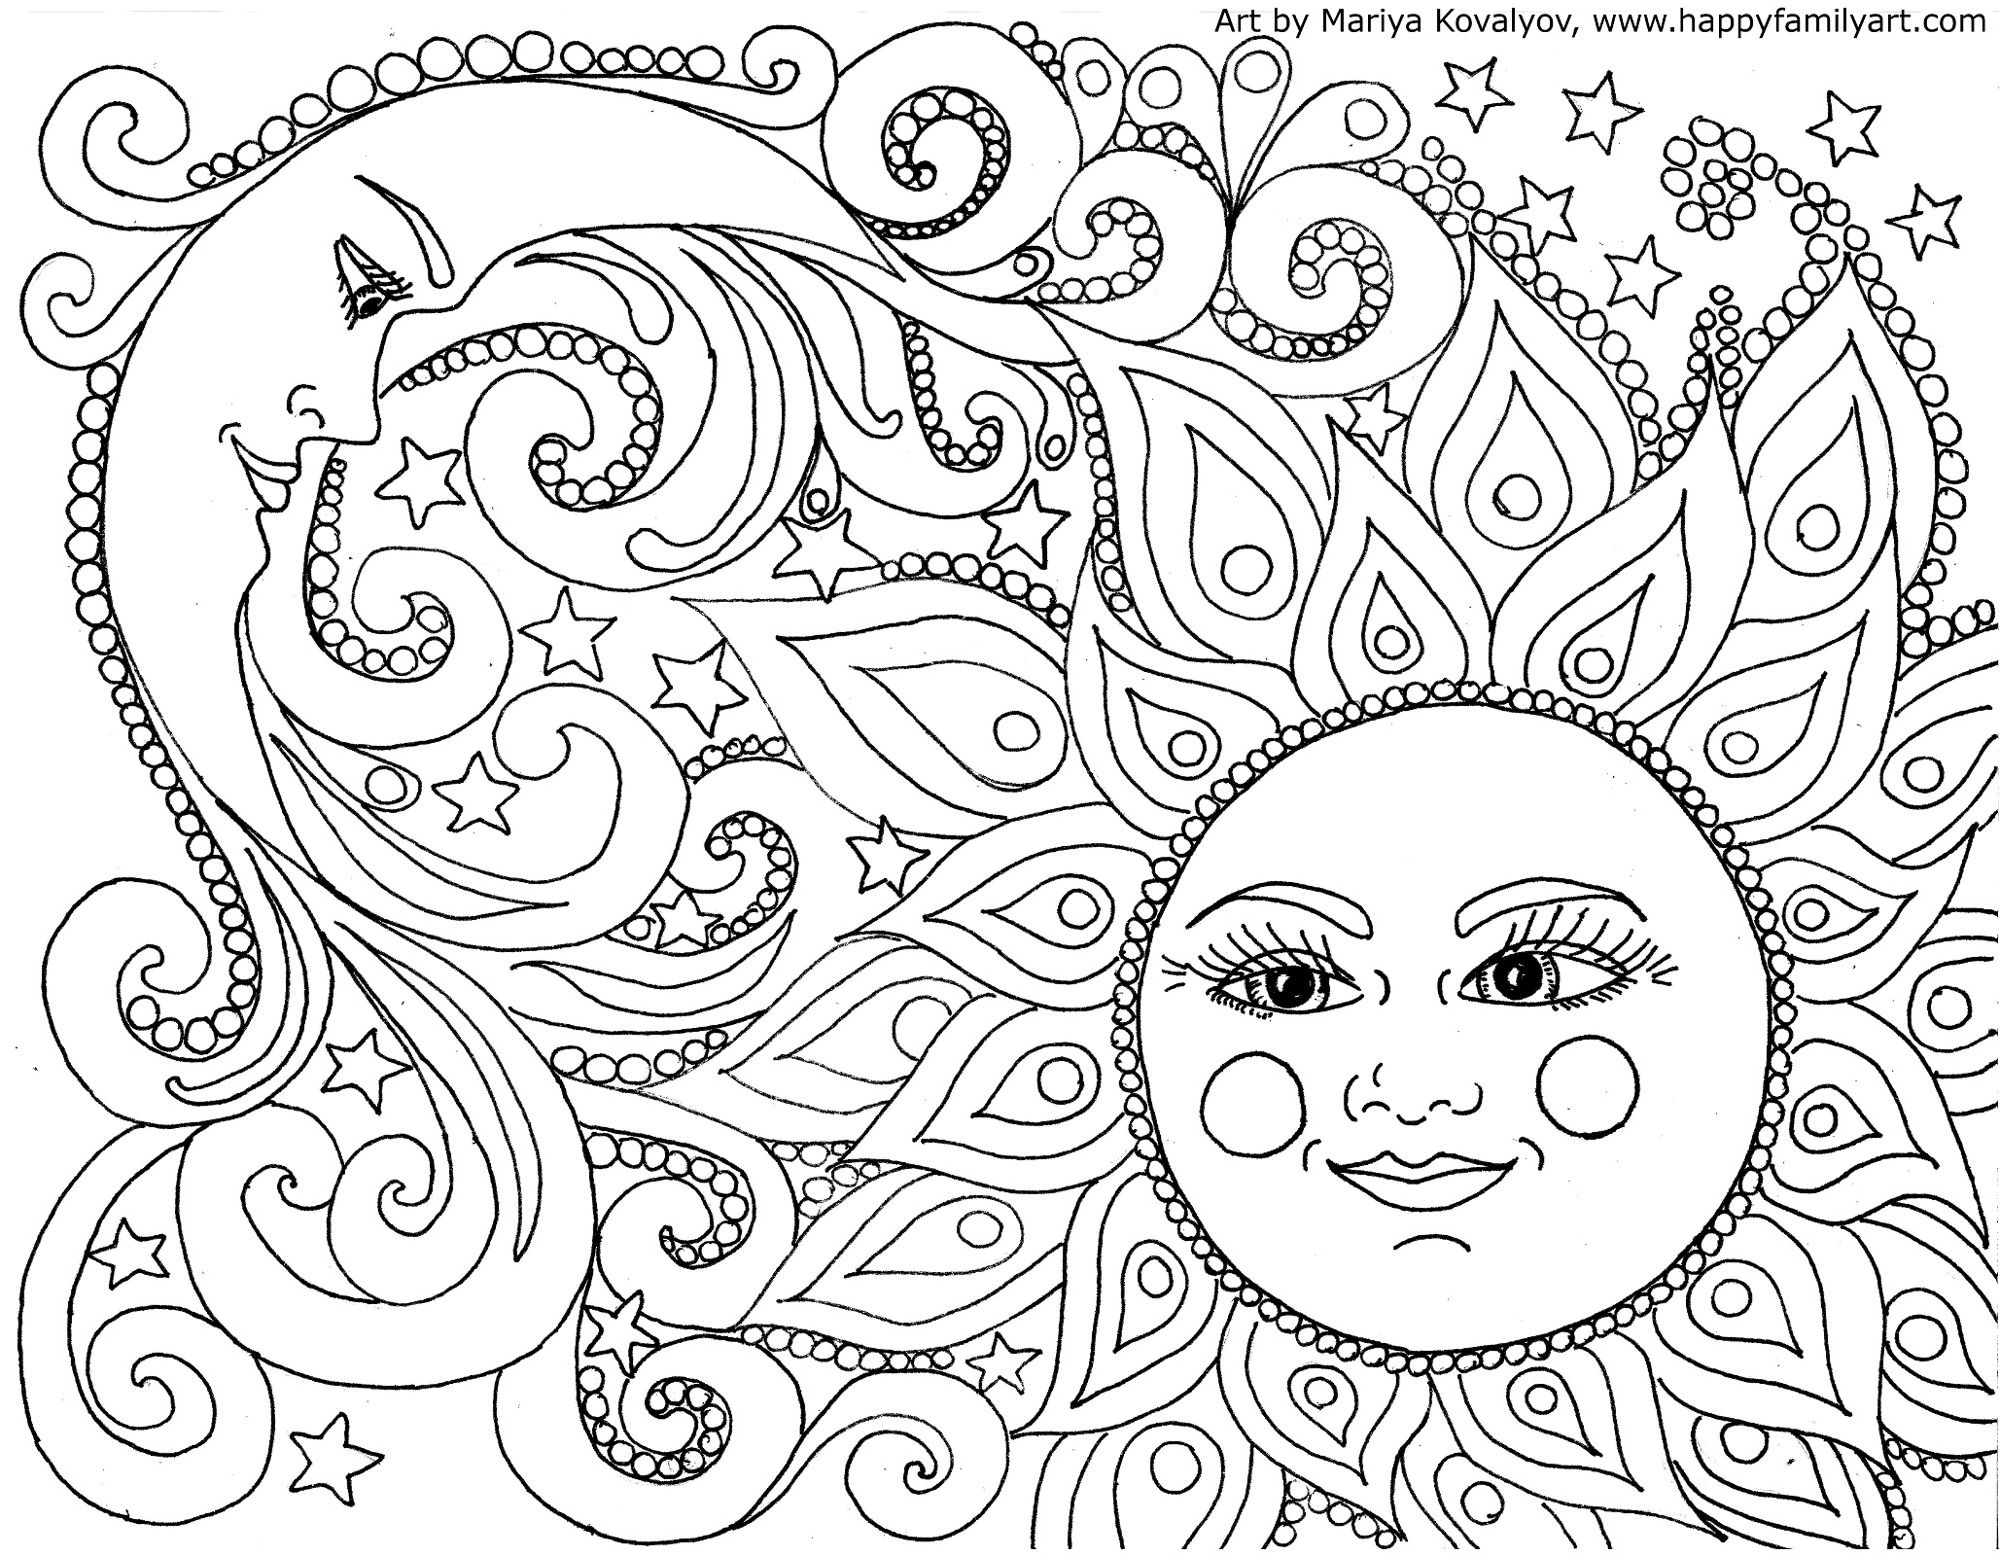 Best Adult coloring pages ideas on Pinterest